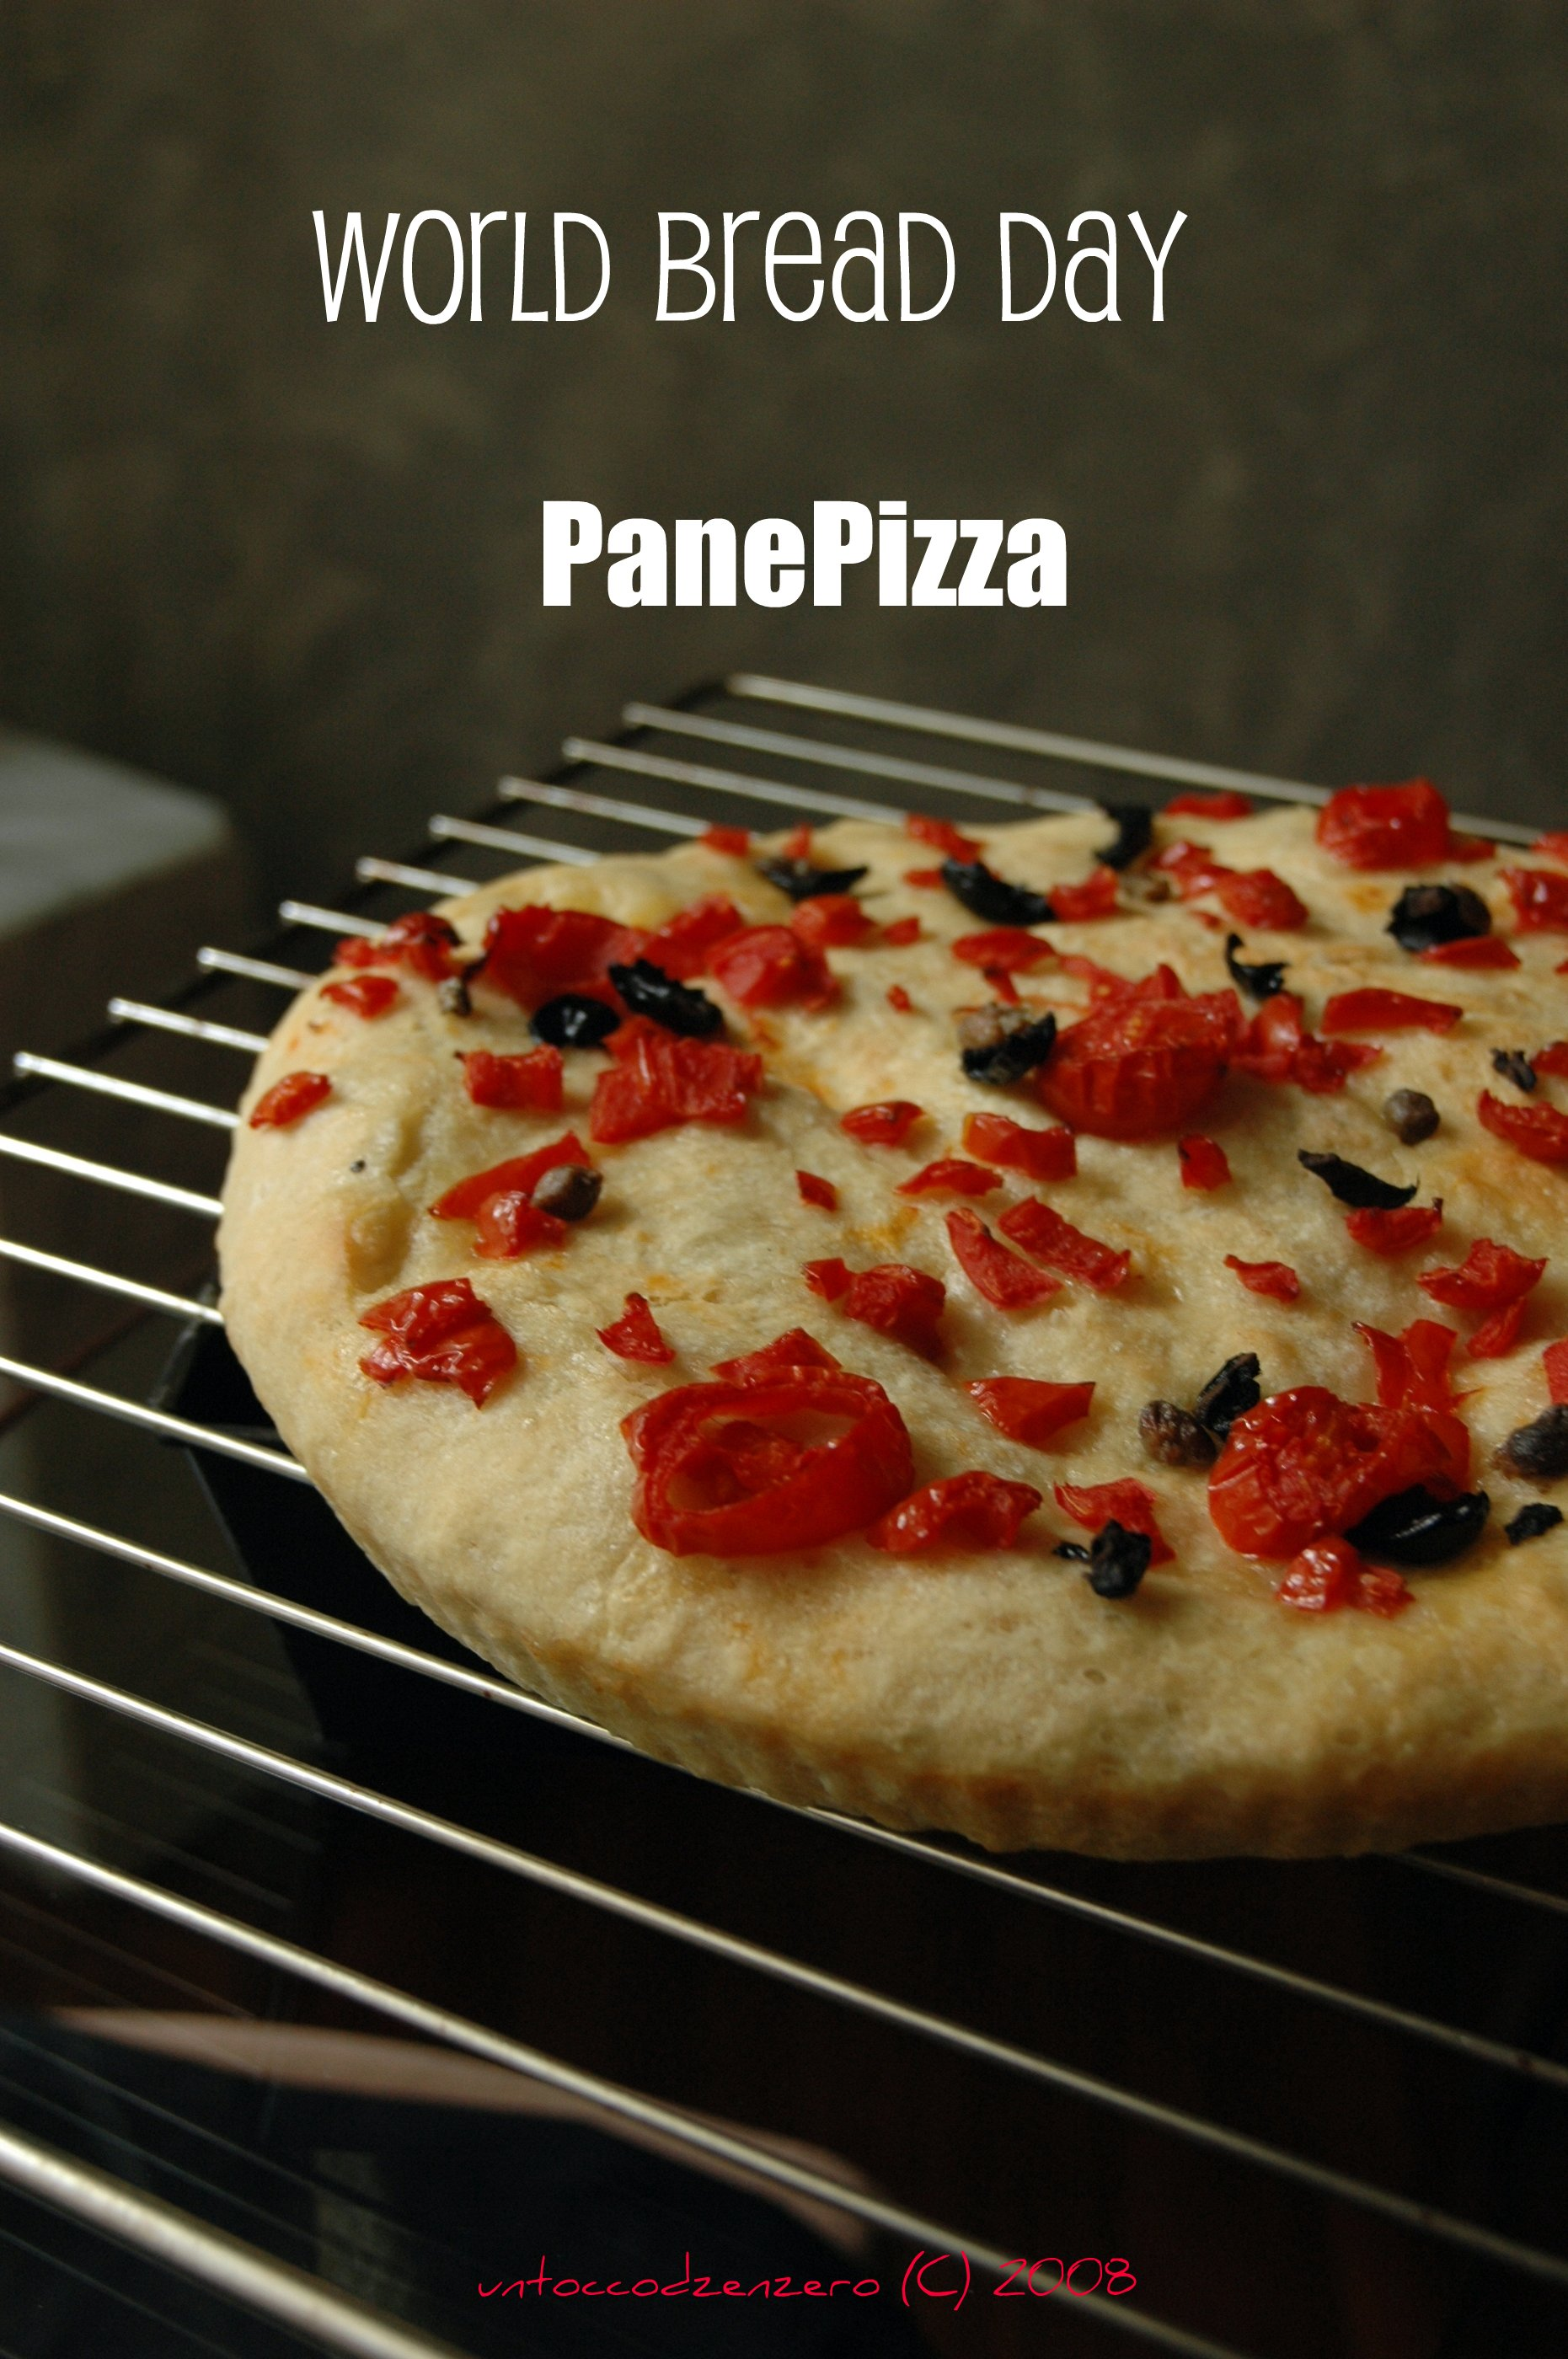 World Bread Day.. Panepizza!